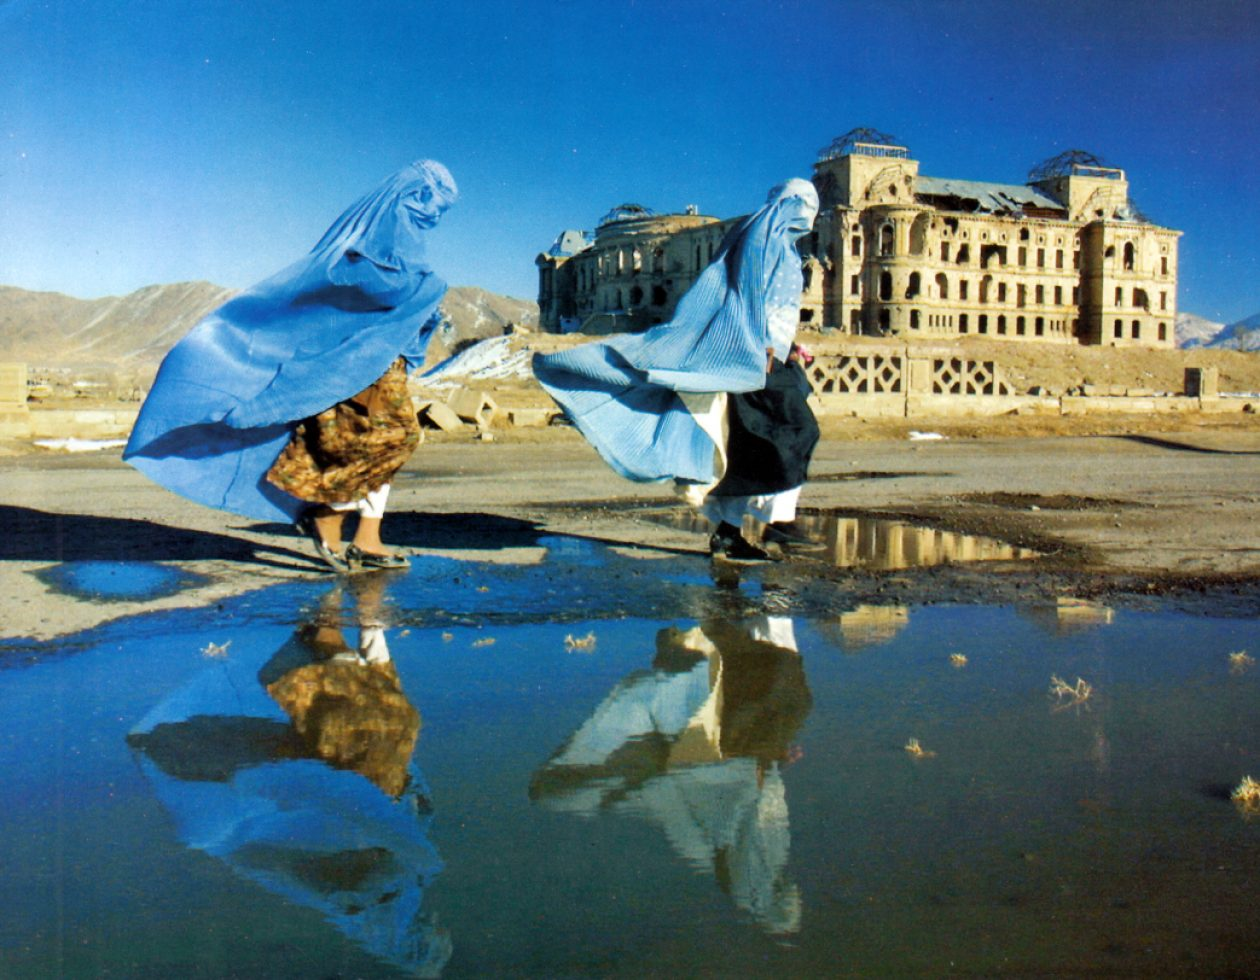 AFGHAN NEWSWIRE – THE VOICE OF THE FREE AFGHANISTAN